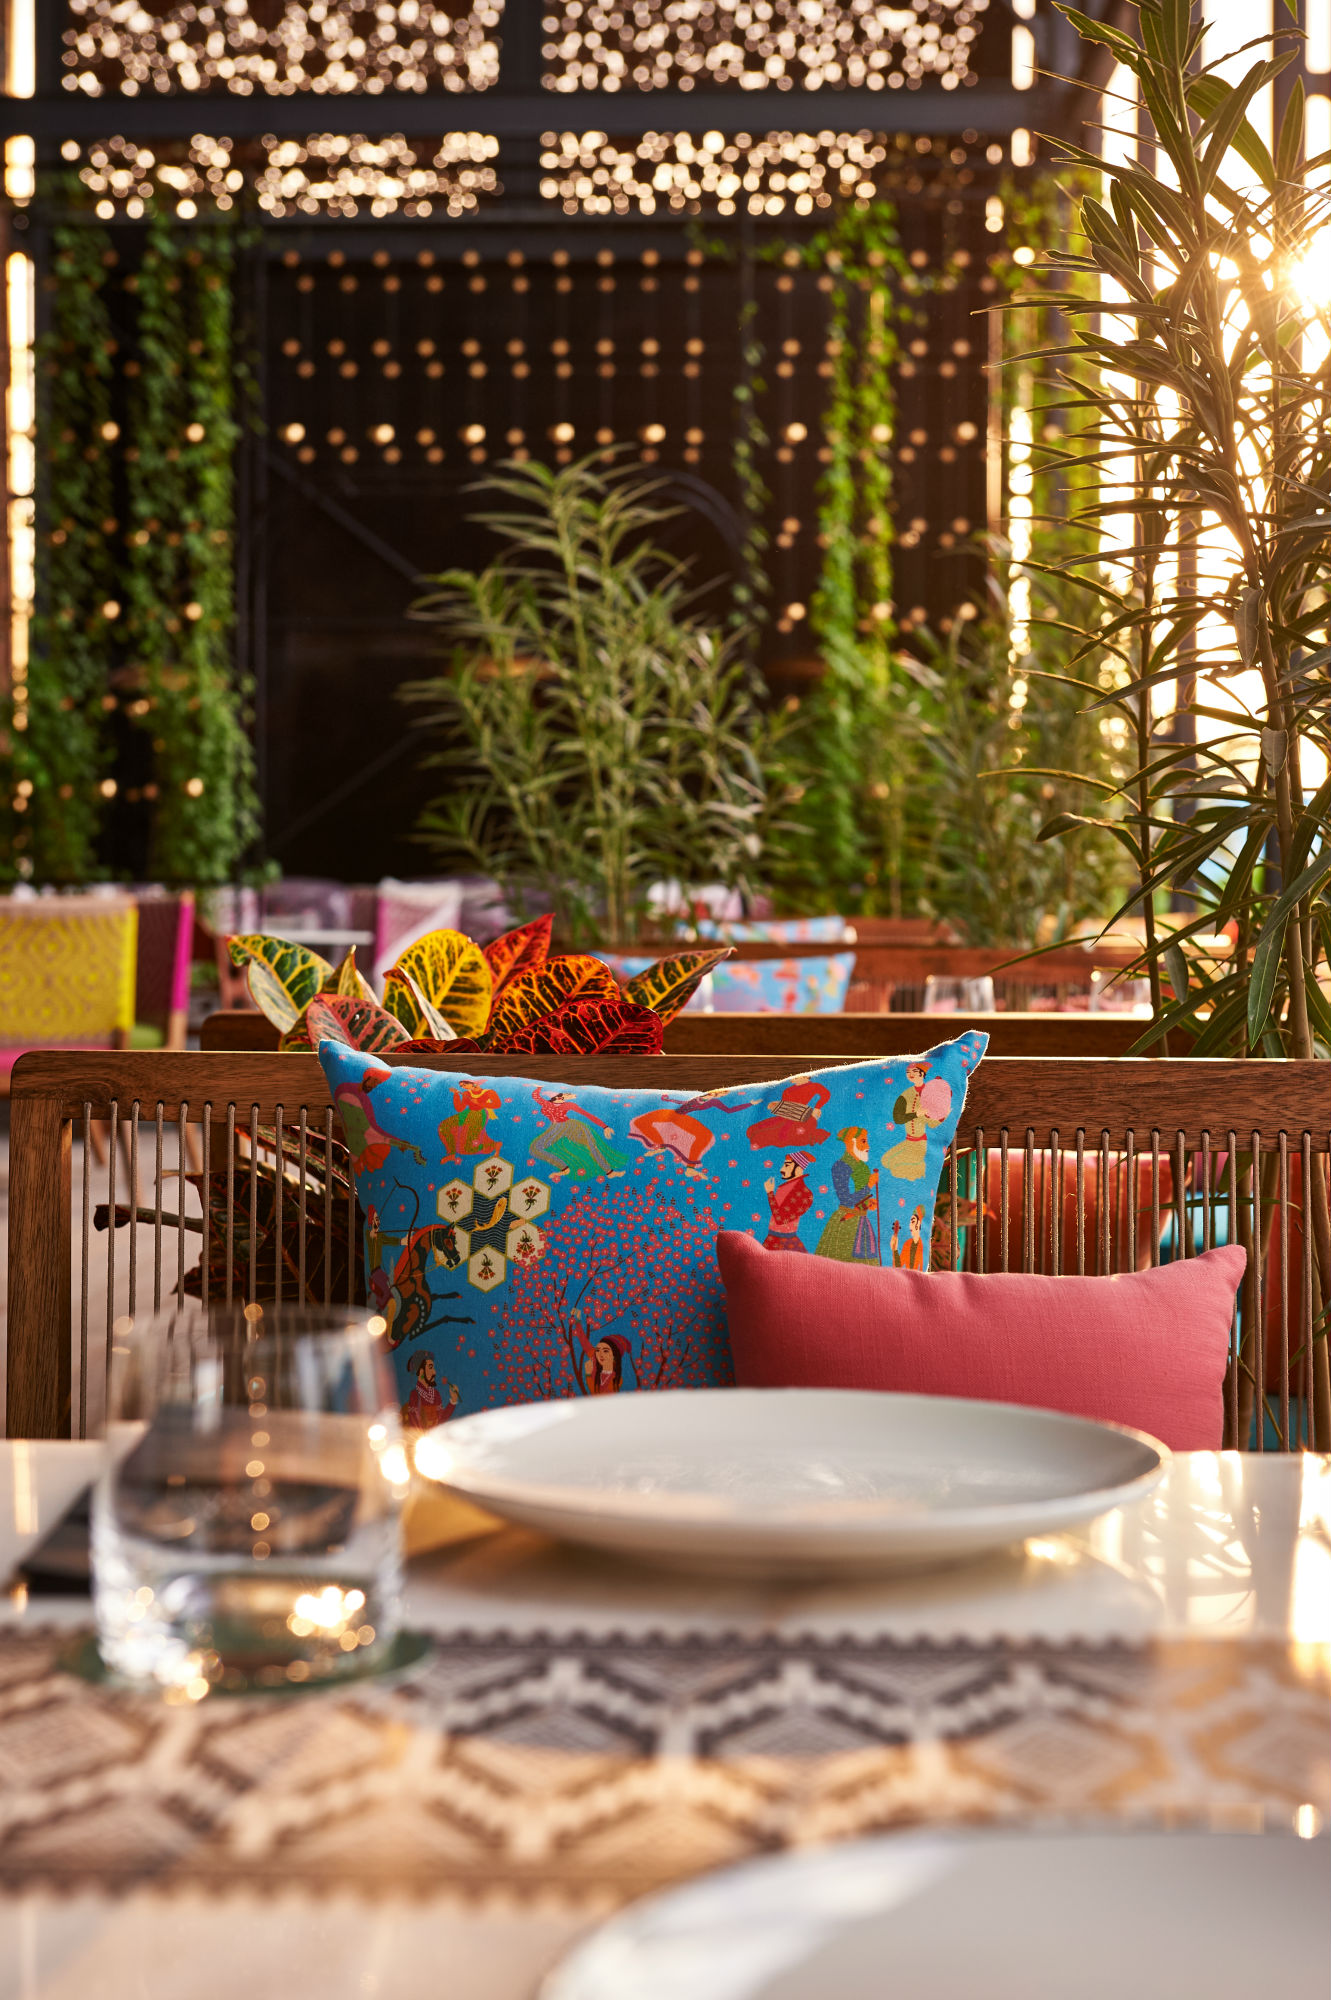 The terrace is just as alluring as the main restaurant and bar when it comes to decor